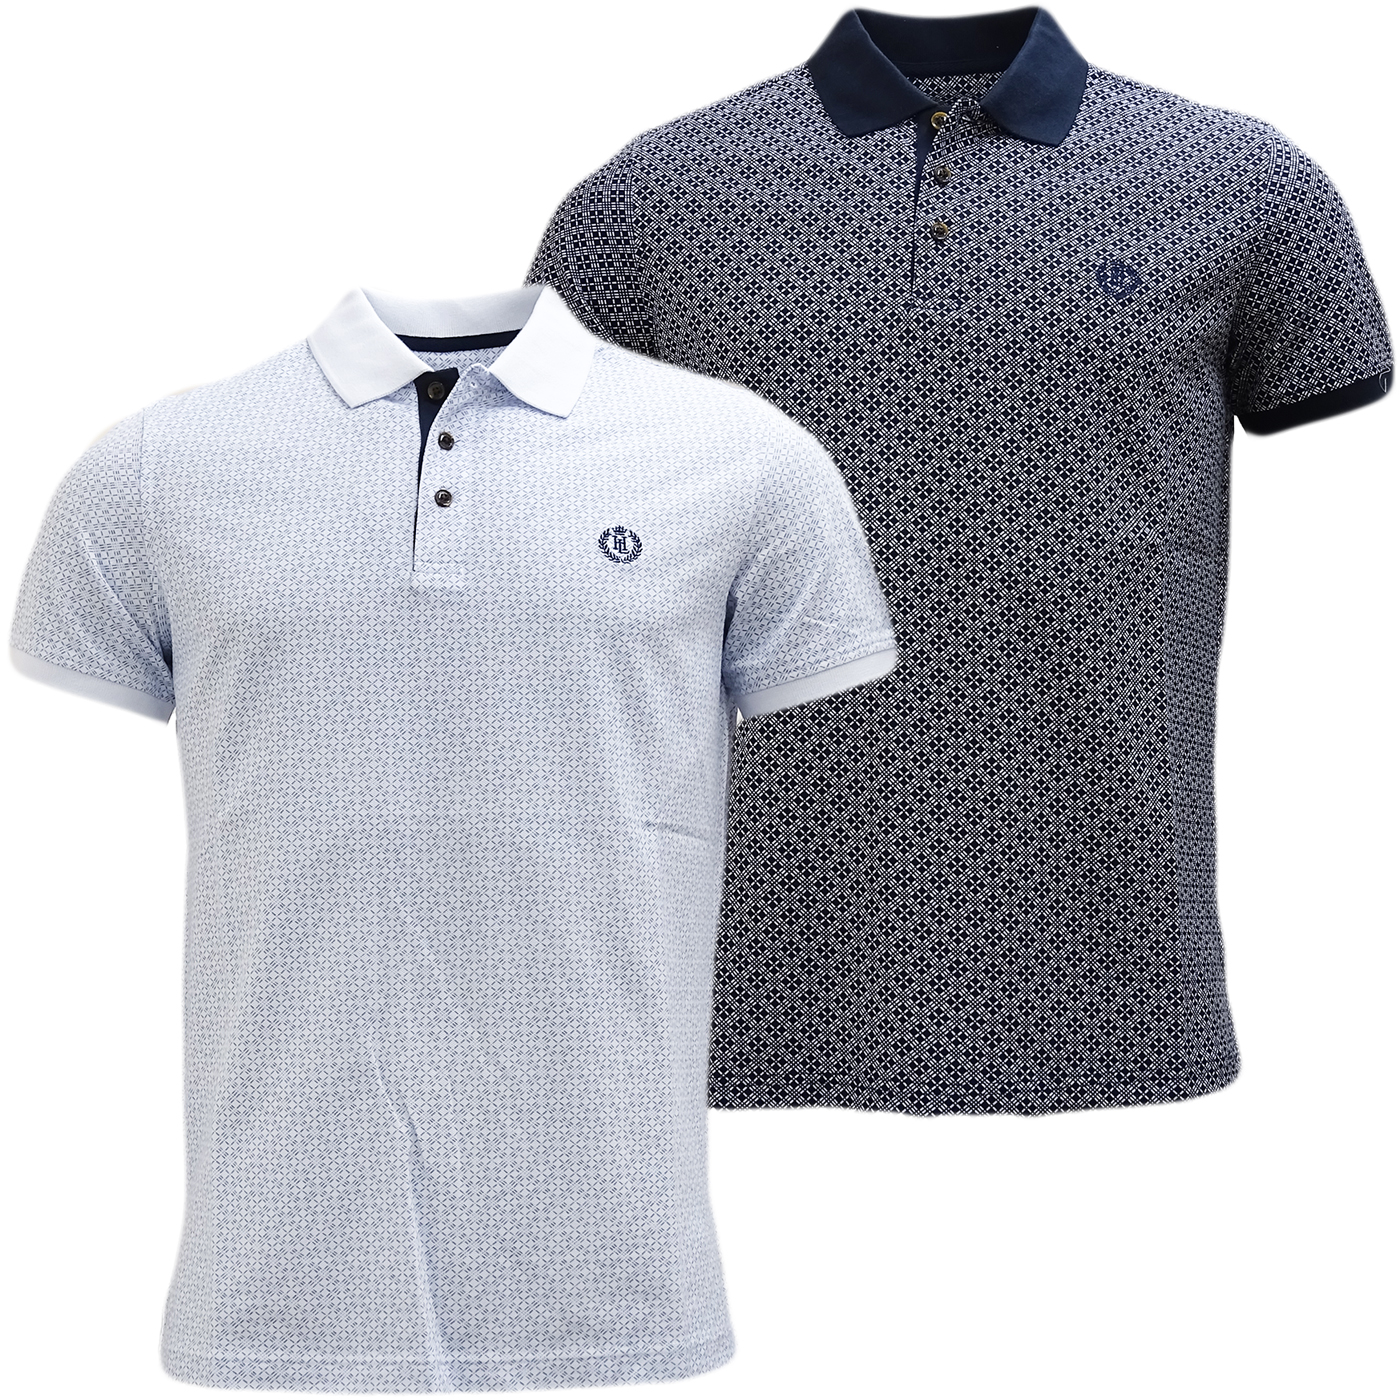 Henri Lloyd Cross Pattern Pique Polo Shirt - Flixton